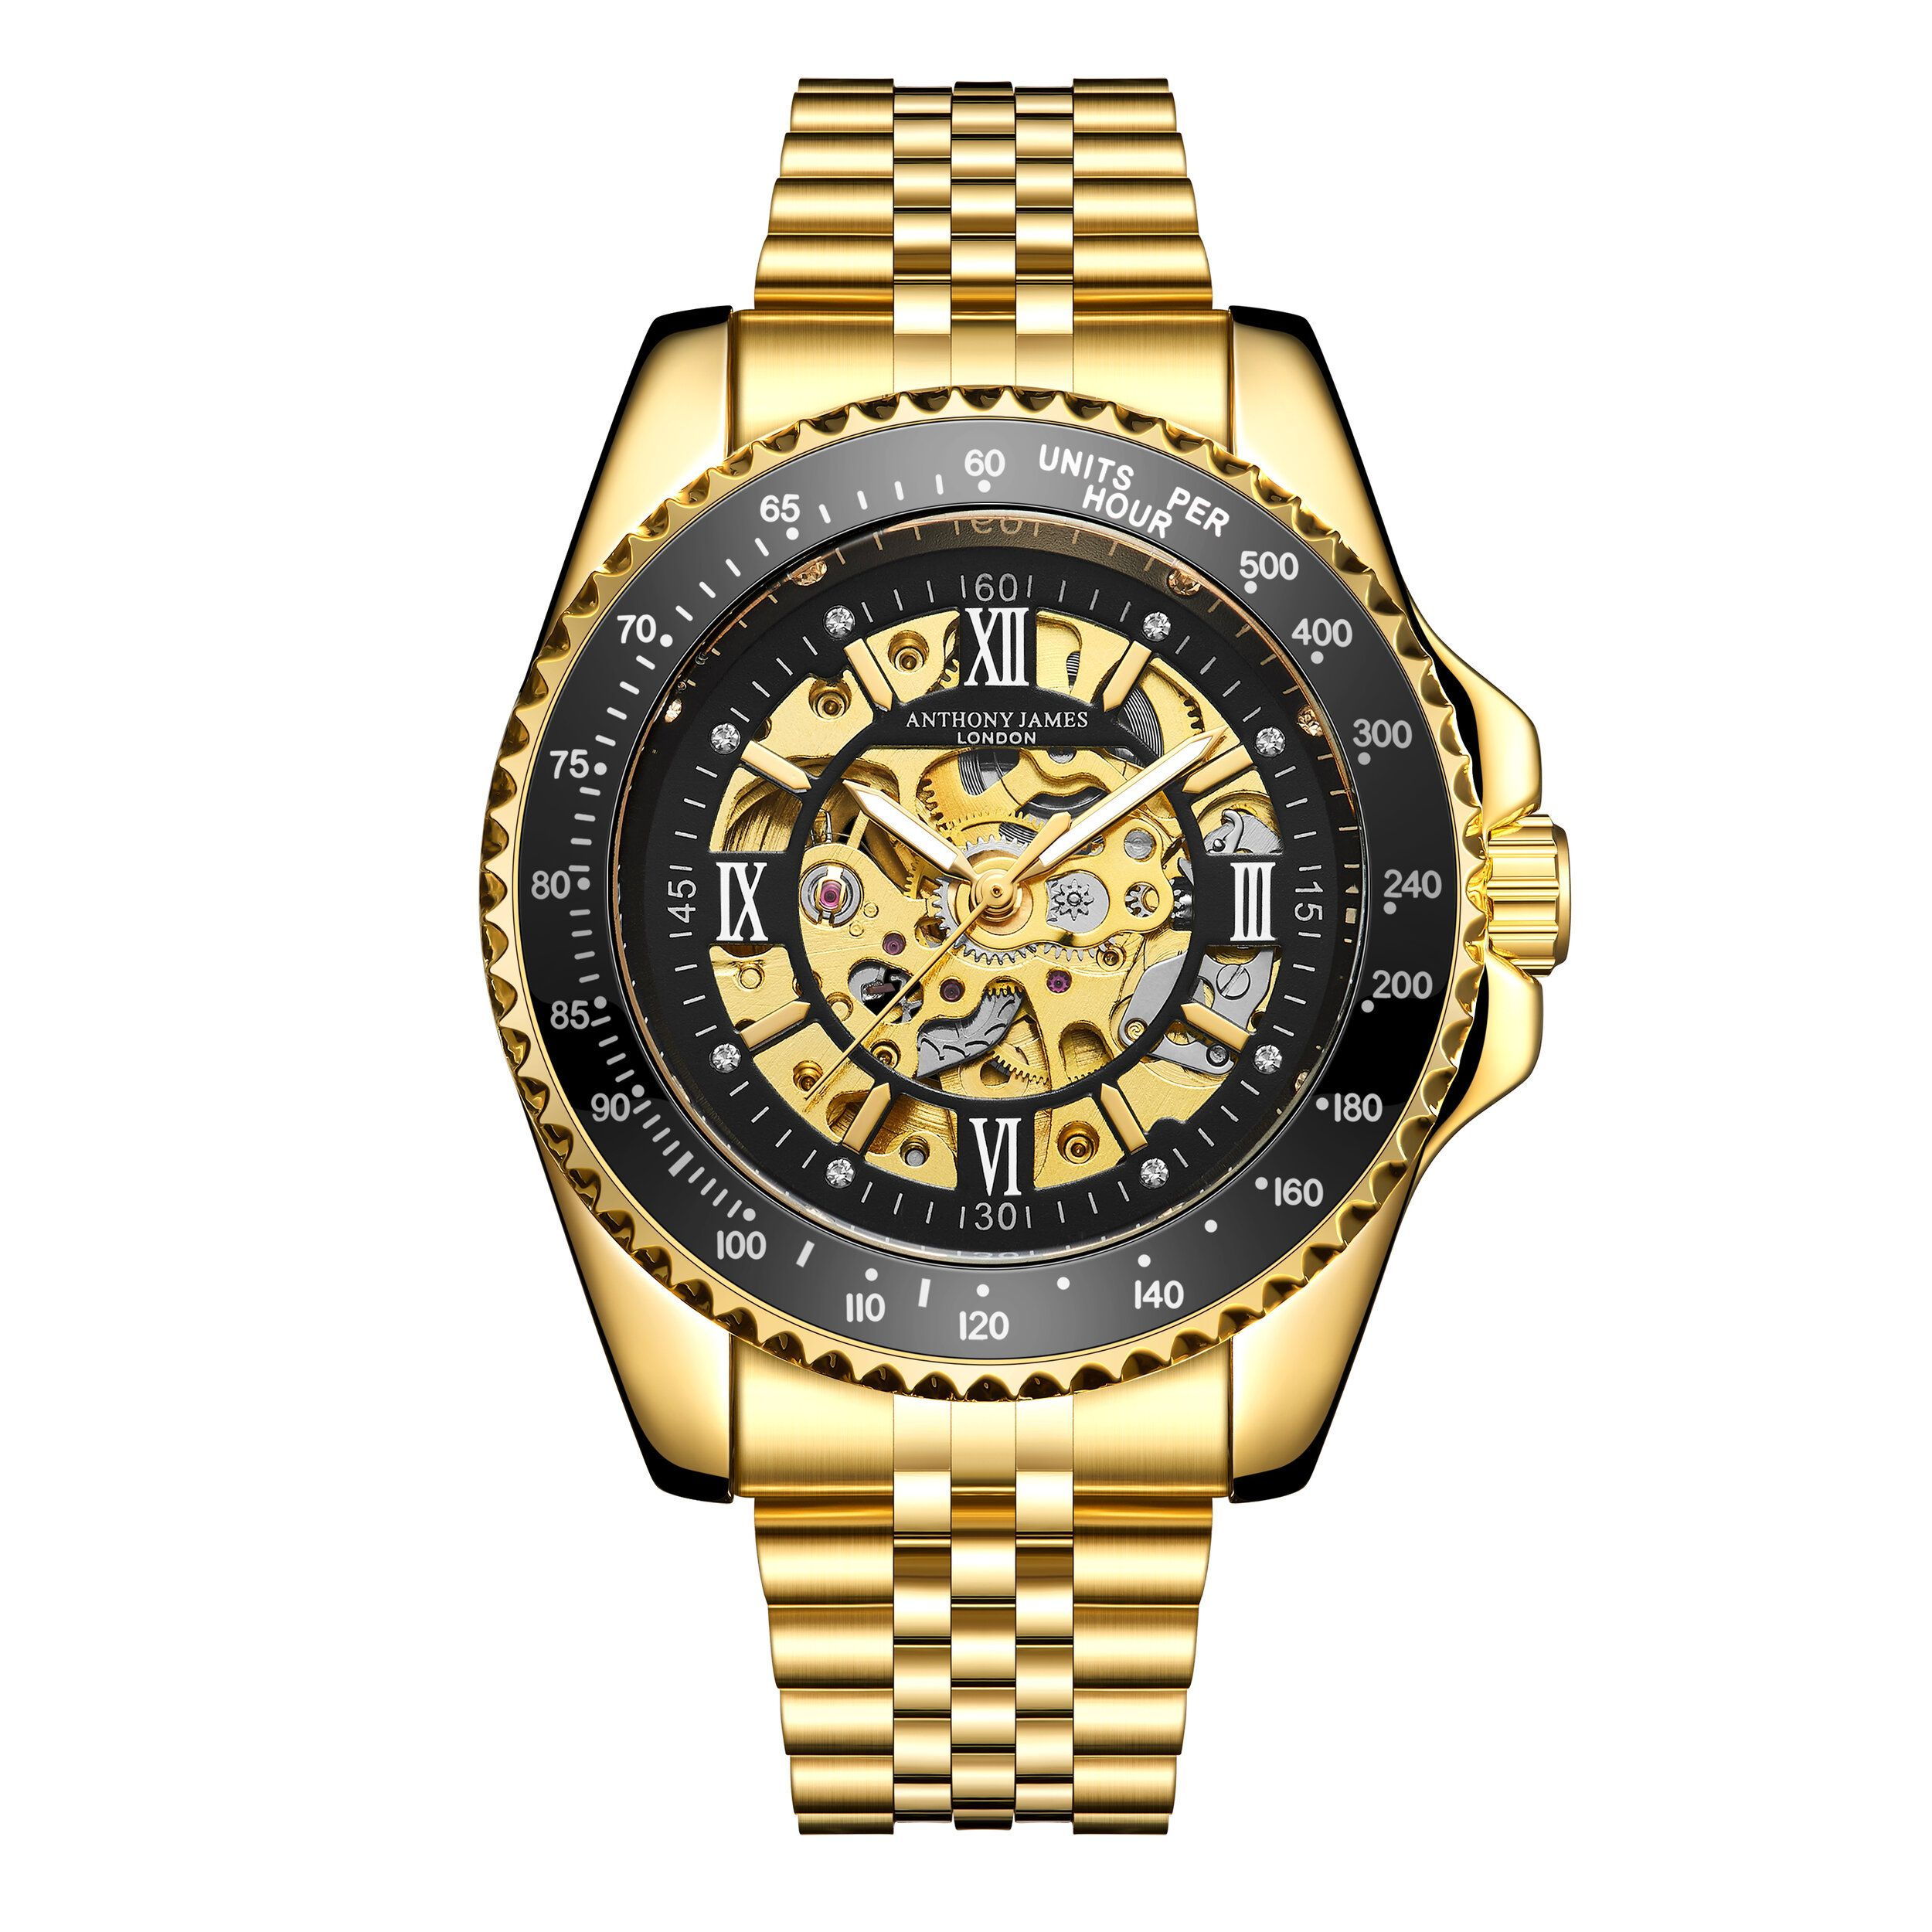 Hand Assembled Anthony James Limited Edition Tachymeter Sports Automatic Gold